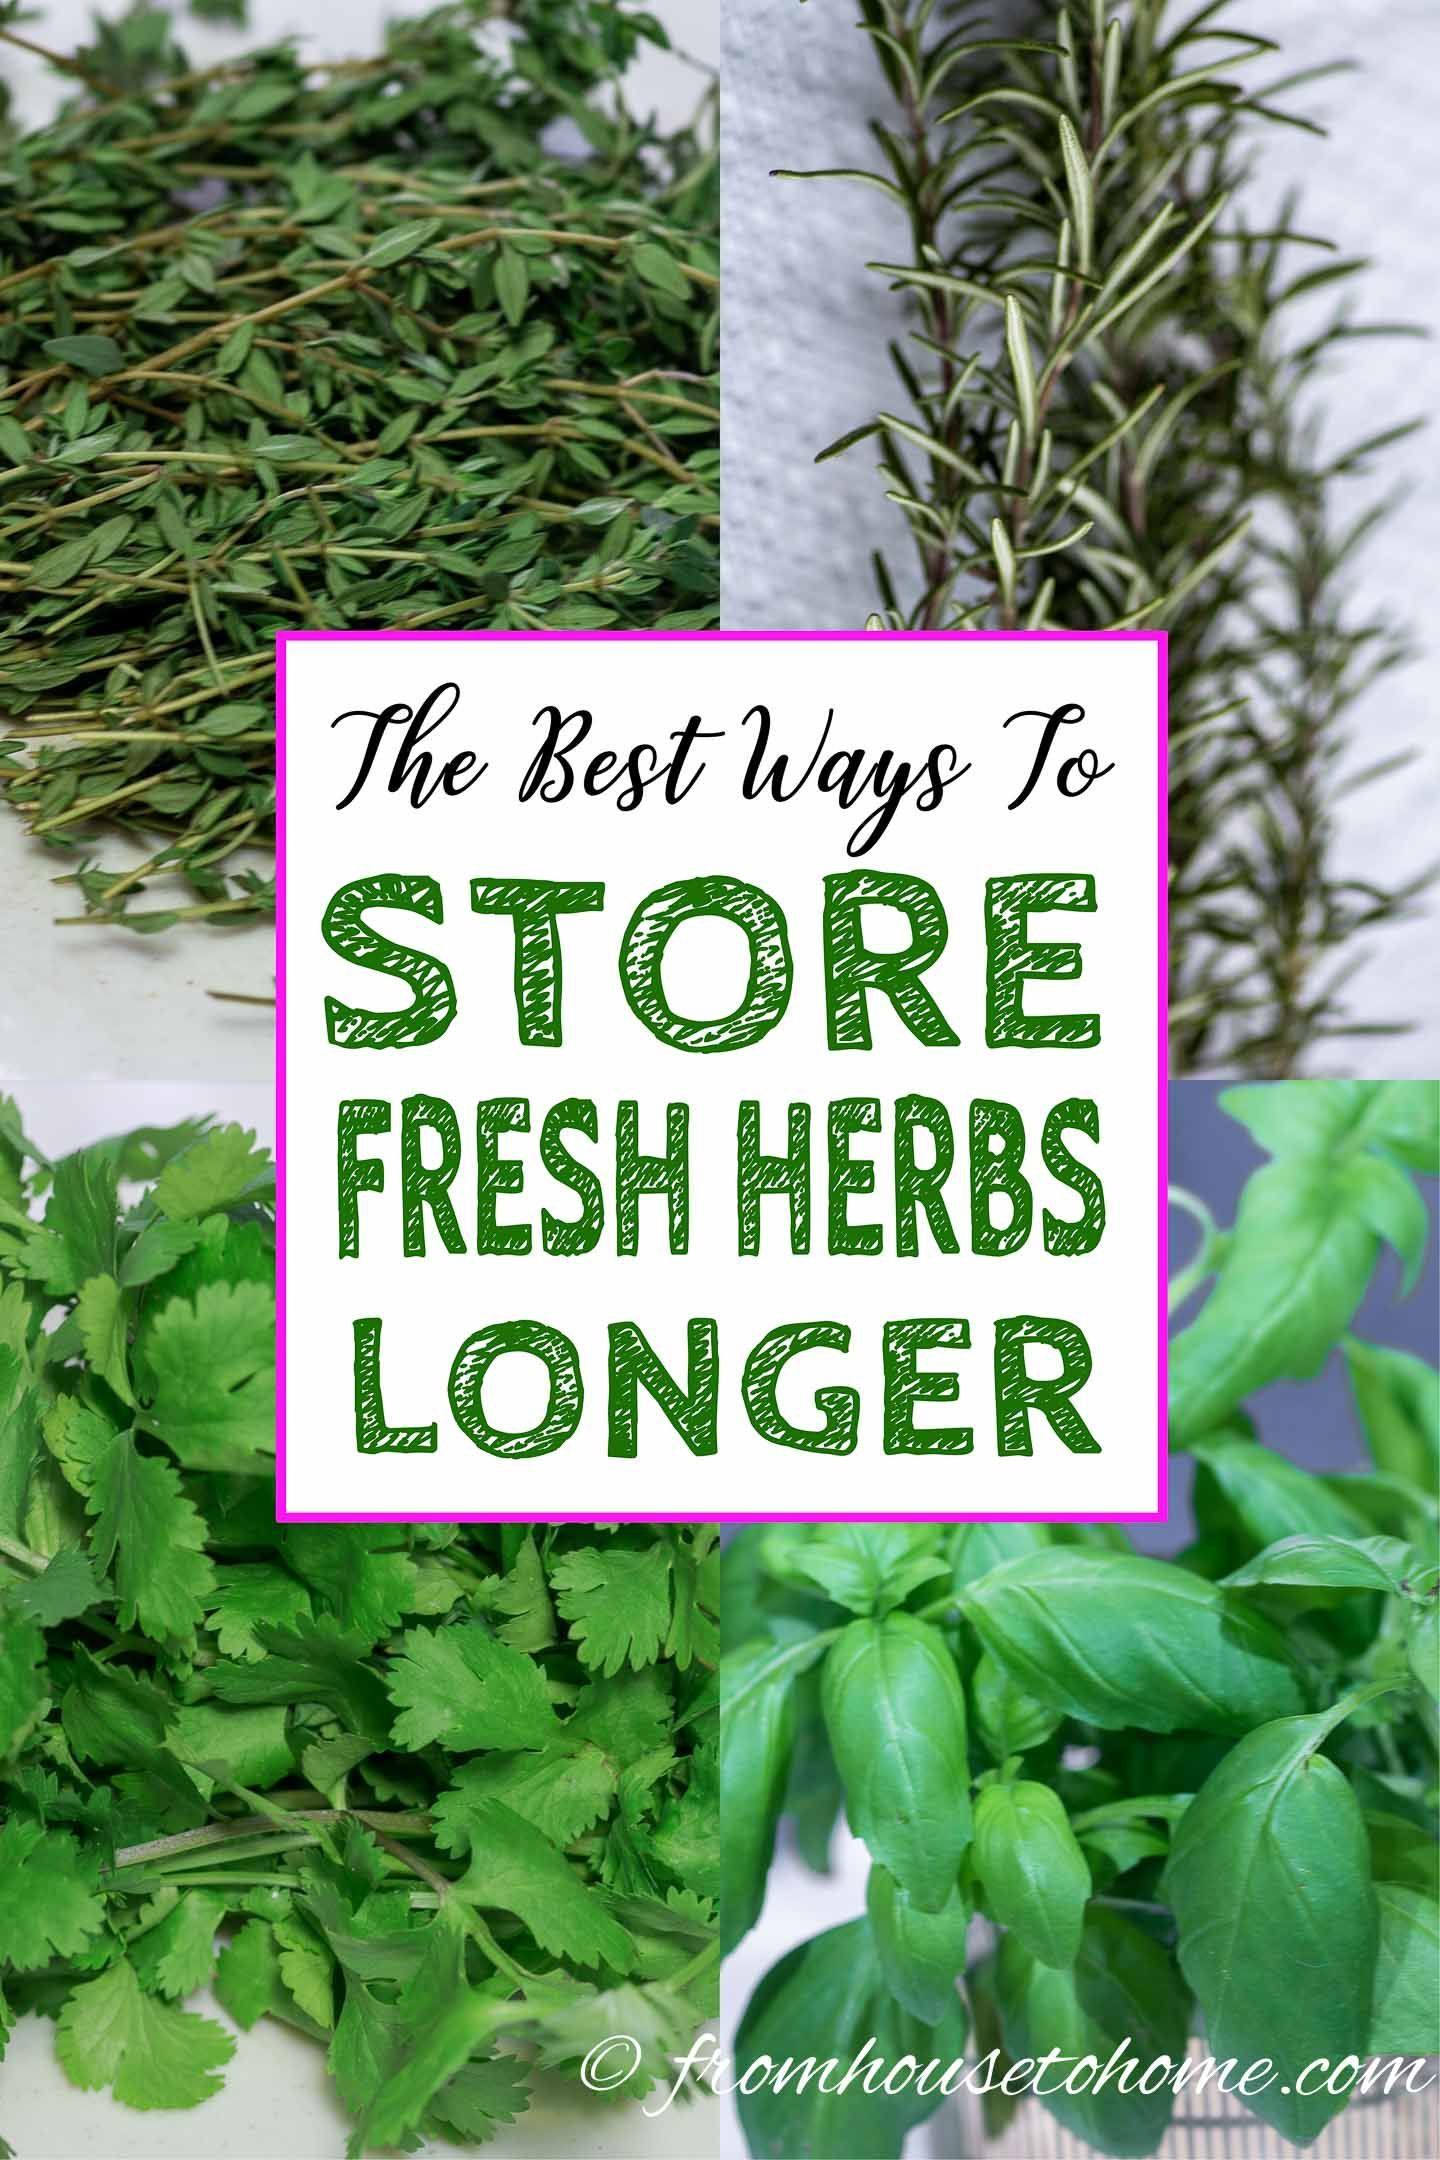 How To Store Parsley Cilantro And Other Fresh Herbs Longer Gardening From House To Home Store Fresh Herbs Preserve Fresh Herbs Cooking With Fresh Herbs